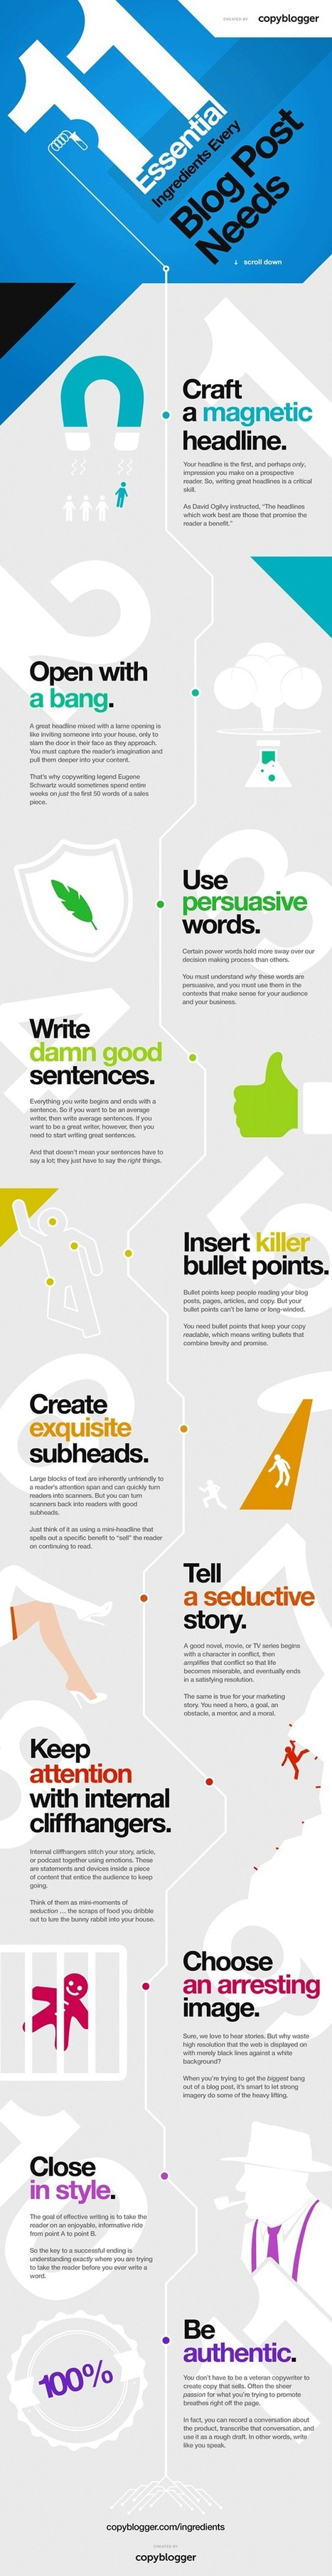 11 Essential Ingredients Every Blog Post Needs [Infographic] - SociallyStacked | My Blog 2014 | Scoop.it